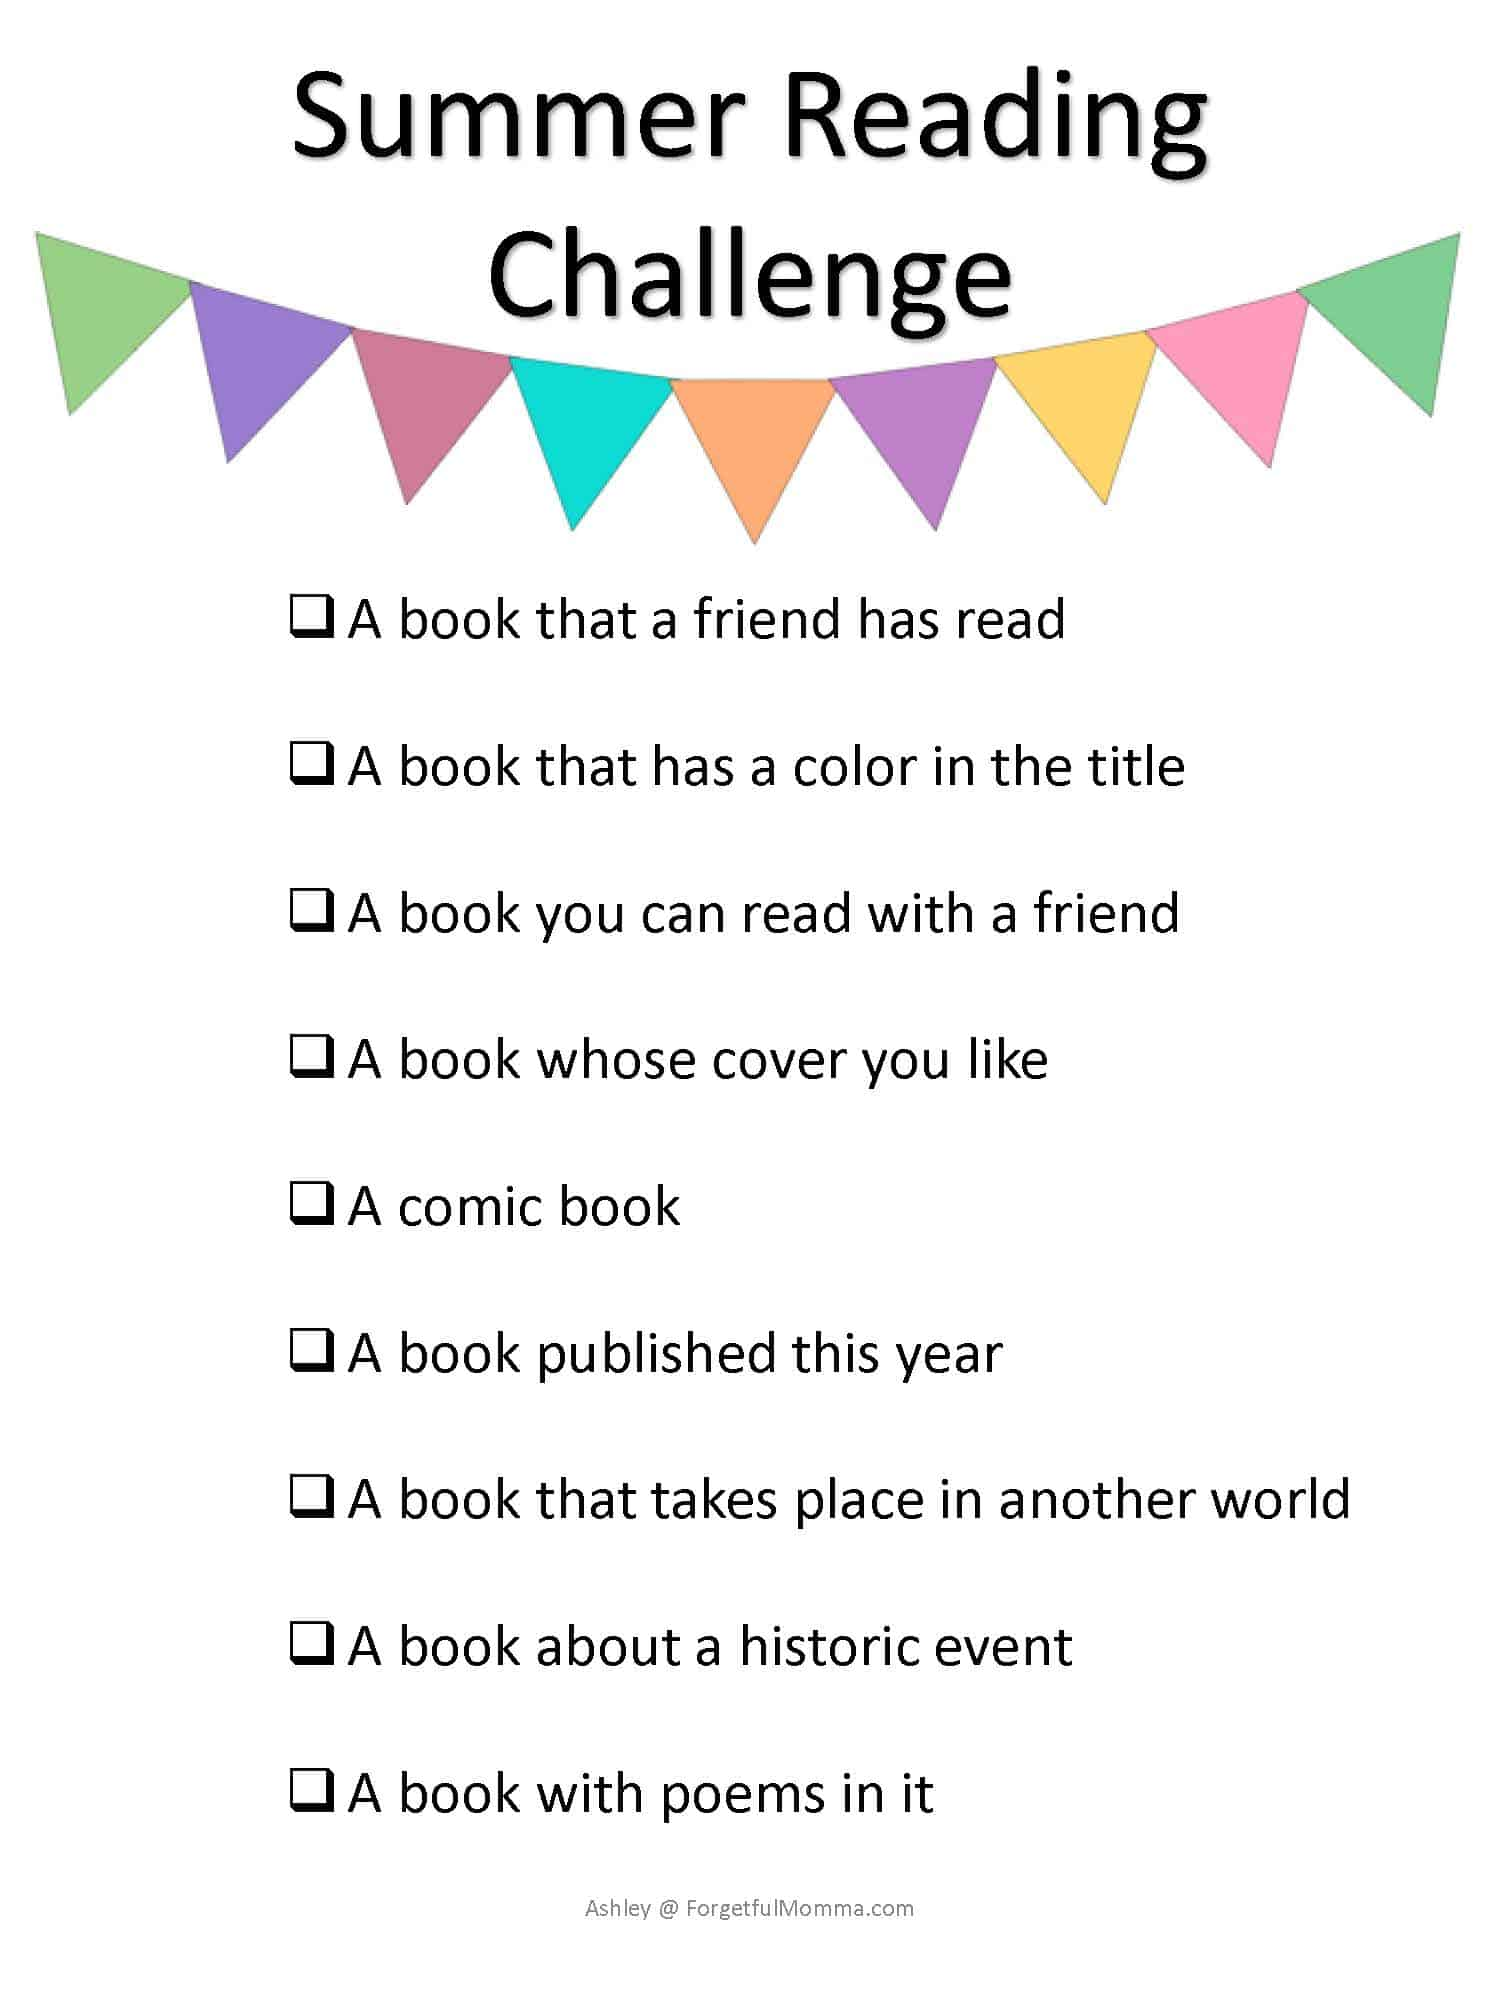 Summer Reading Challenge books